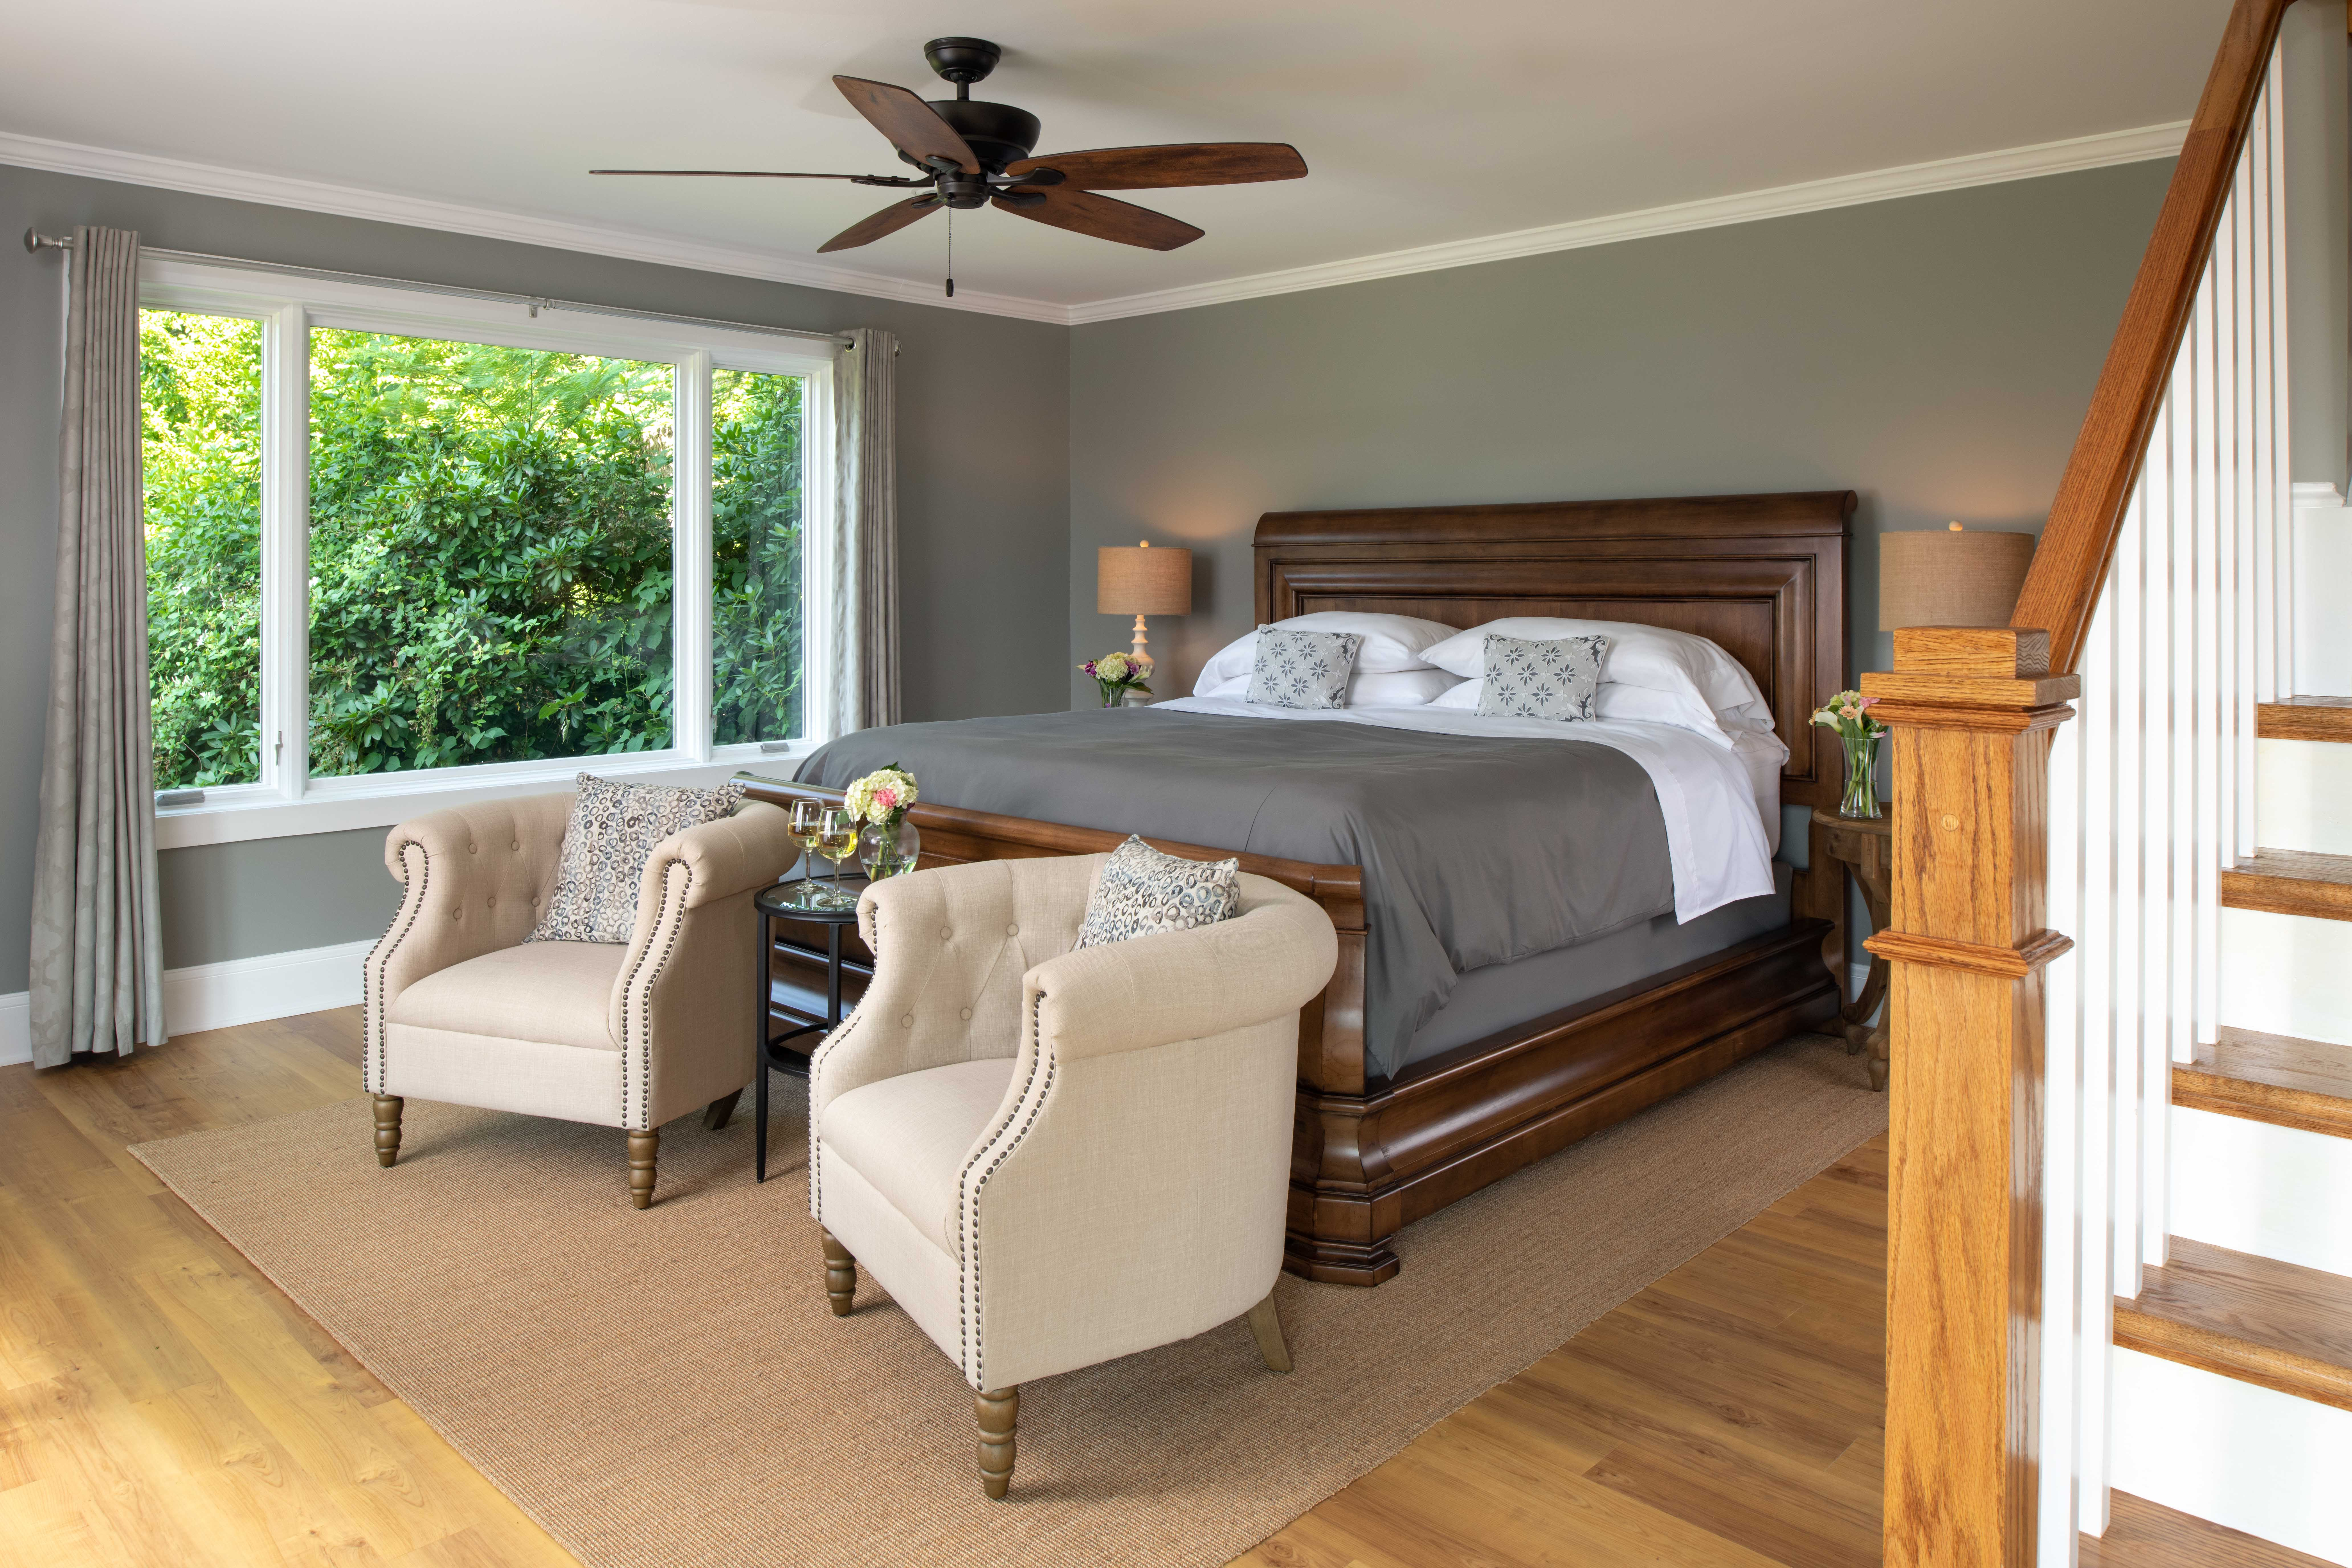 Arcady's Madison Suite with light hardwood floors, area rug, large bed, upholstered chairs and large window